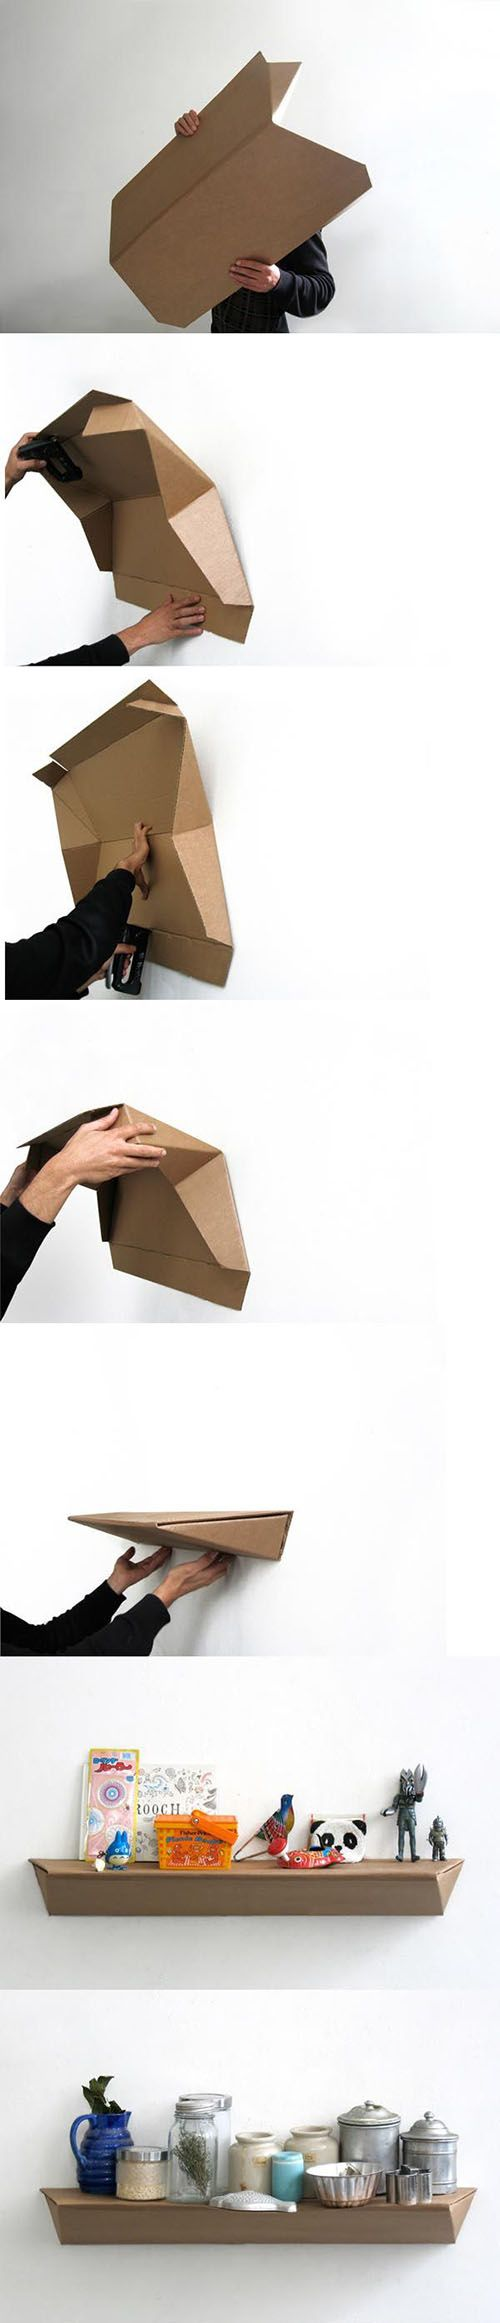 Cardboard furniture techniques how to achieve strength growing up - Find This Pin And More On Cardboard Word By Vdamski